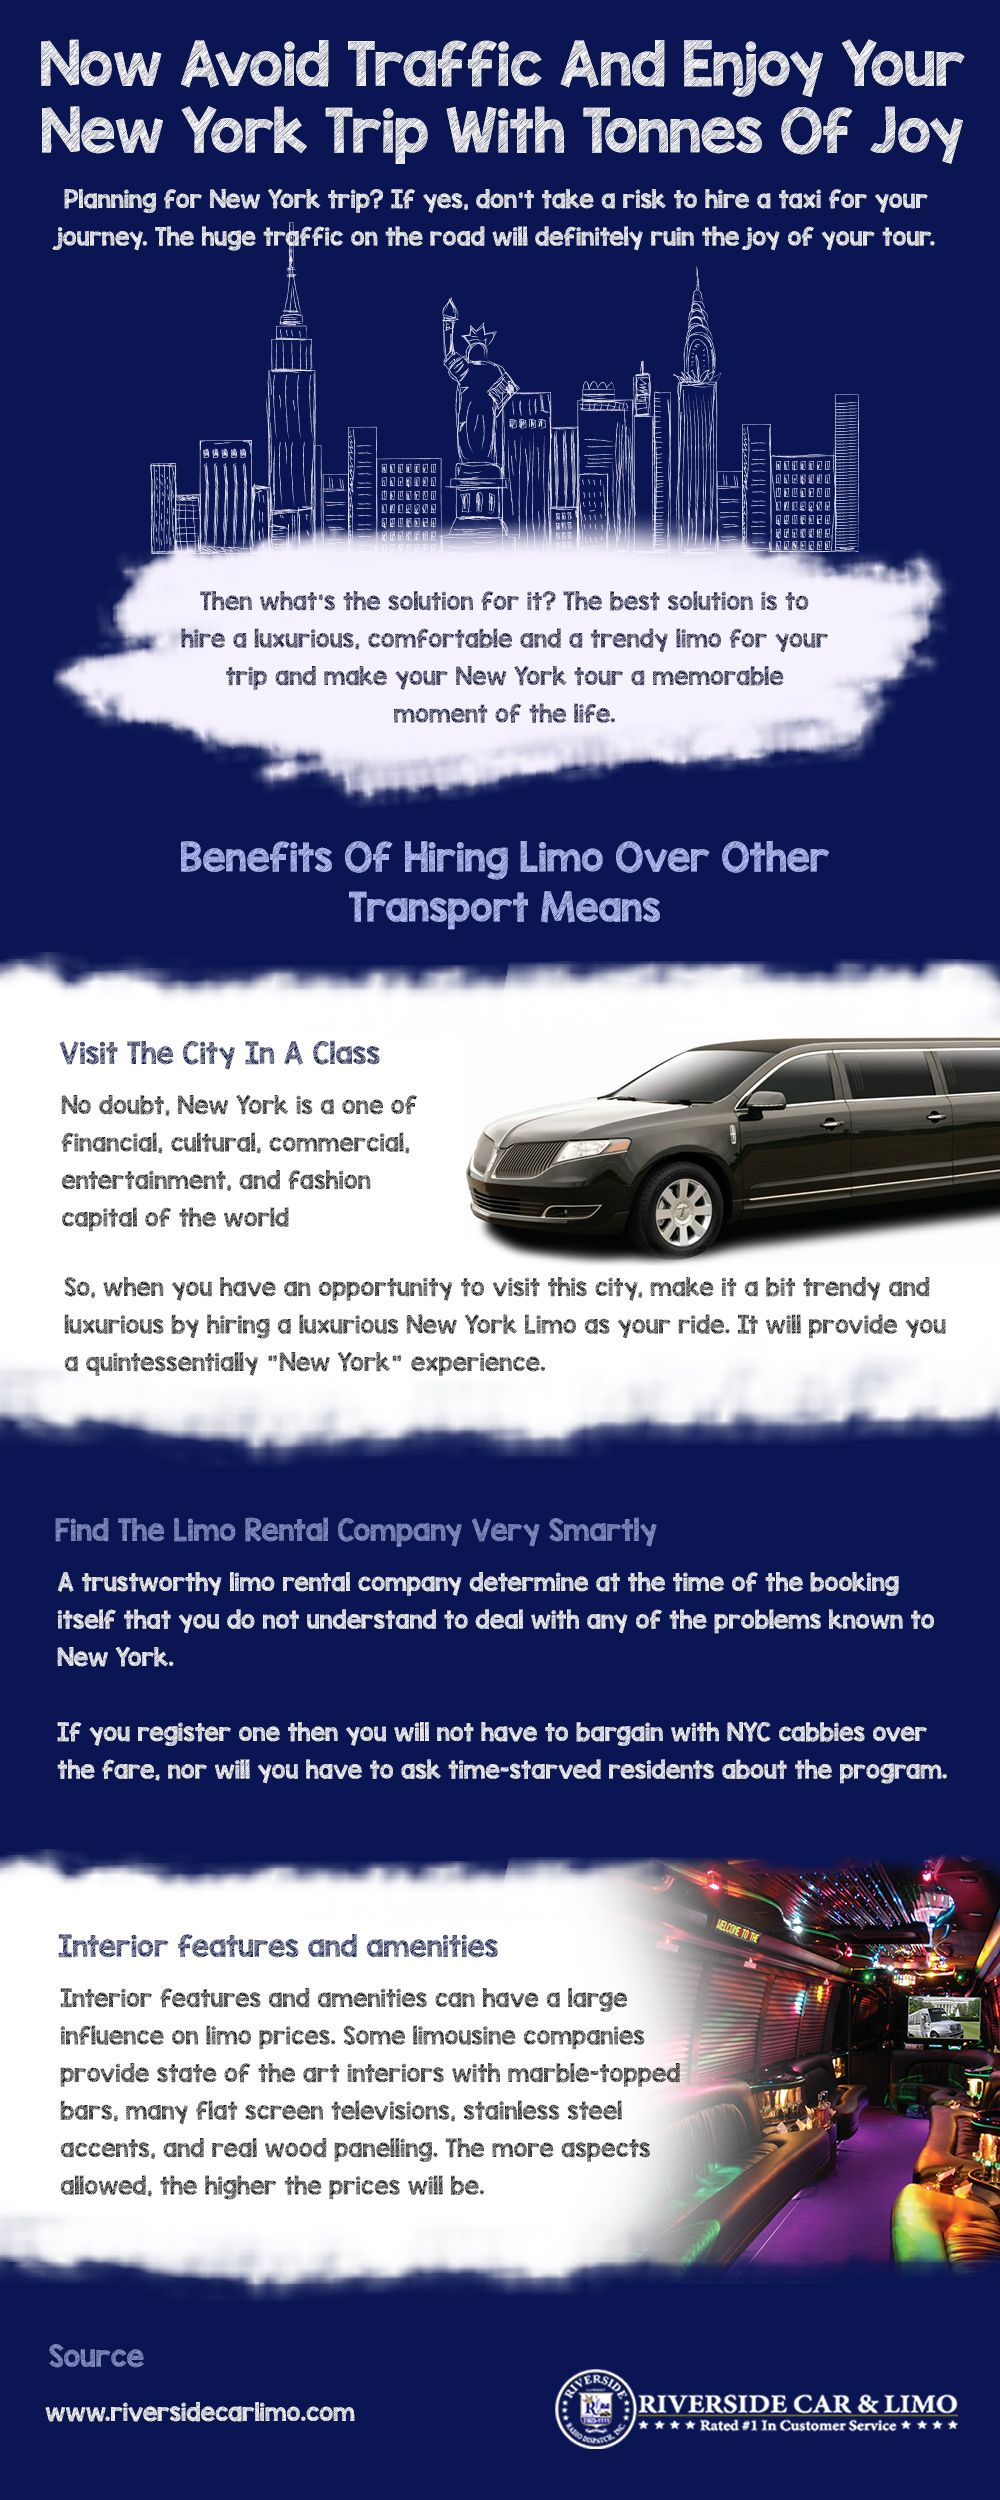 Tri State Airport Limo Car Rental Services Nyc New York Travel Car Rental Service Limo